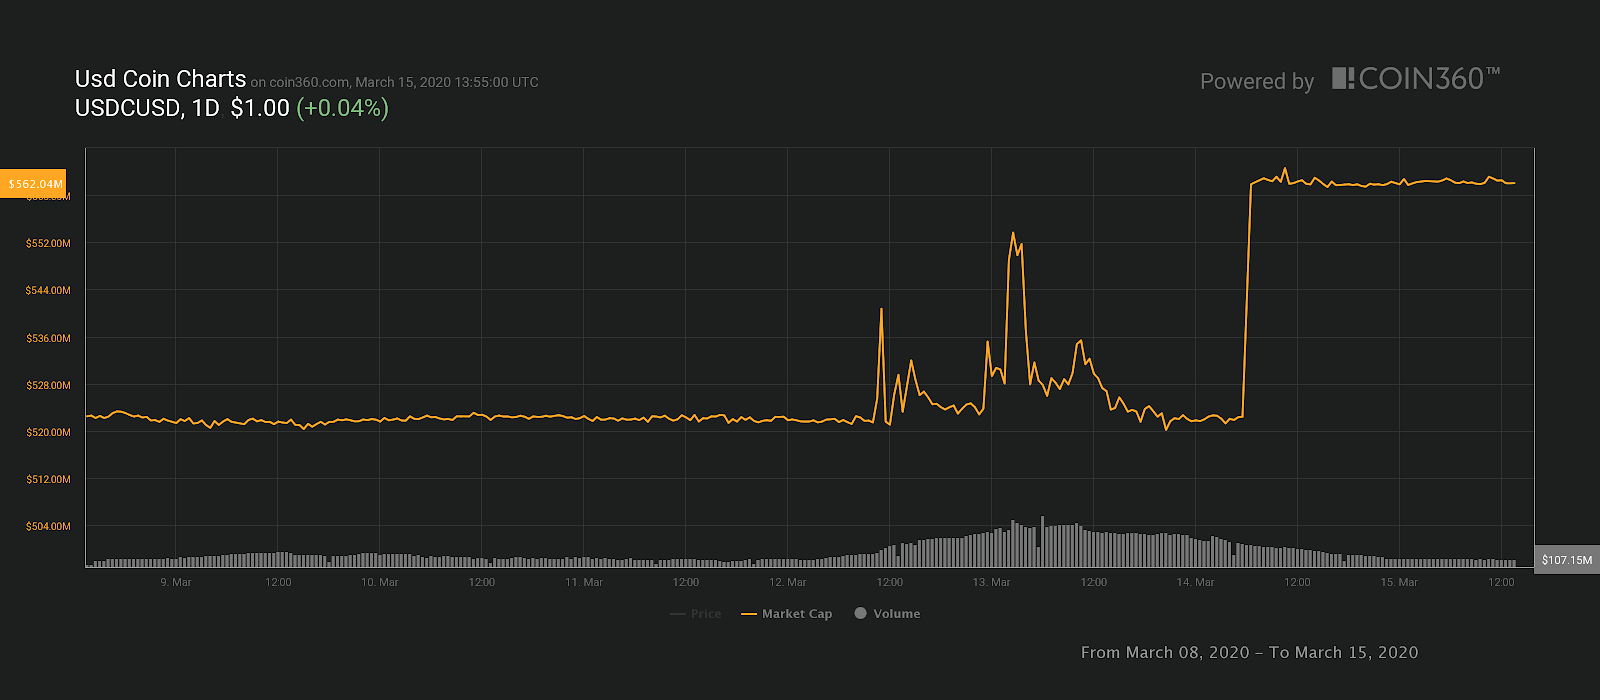 USDC market cap 7-day chart, Source: Coin360